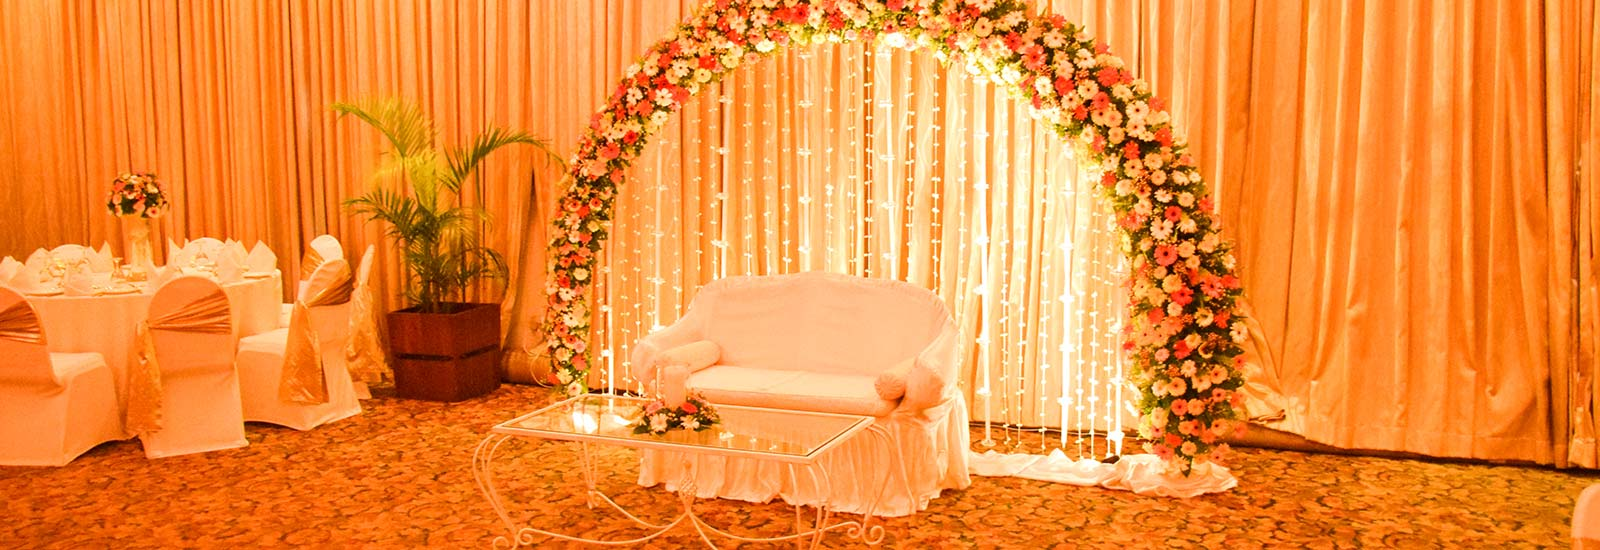 Floral Decorations at a Wedding in Mahaweli Reach Hotel